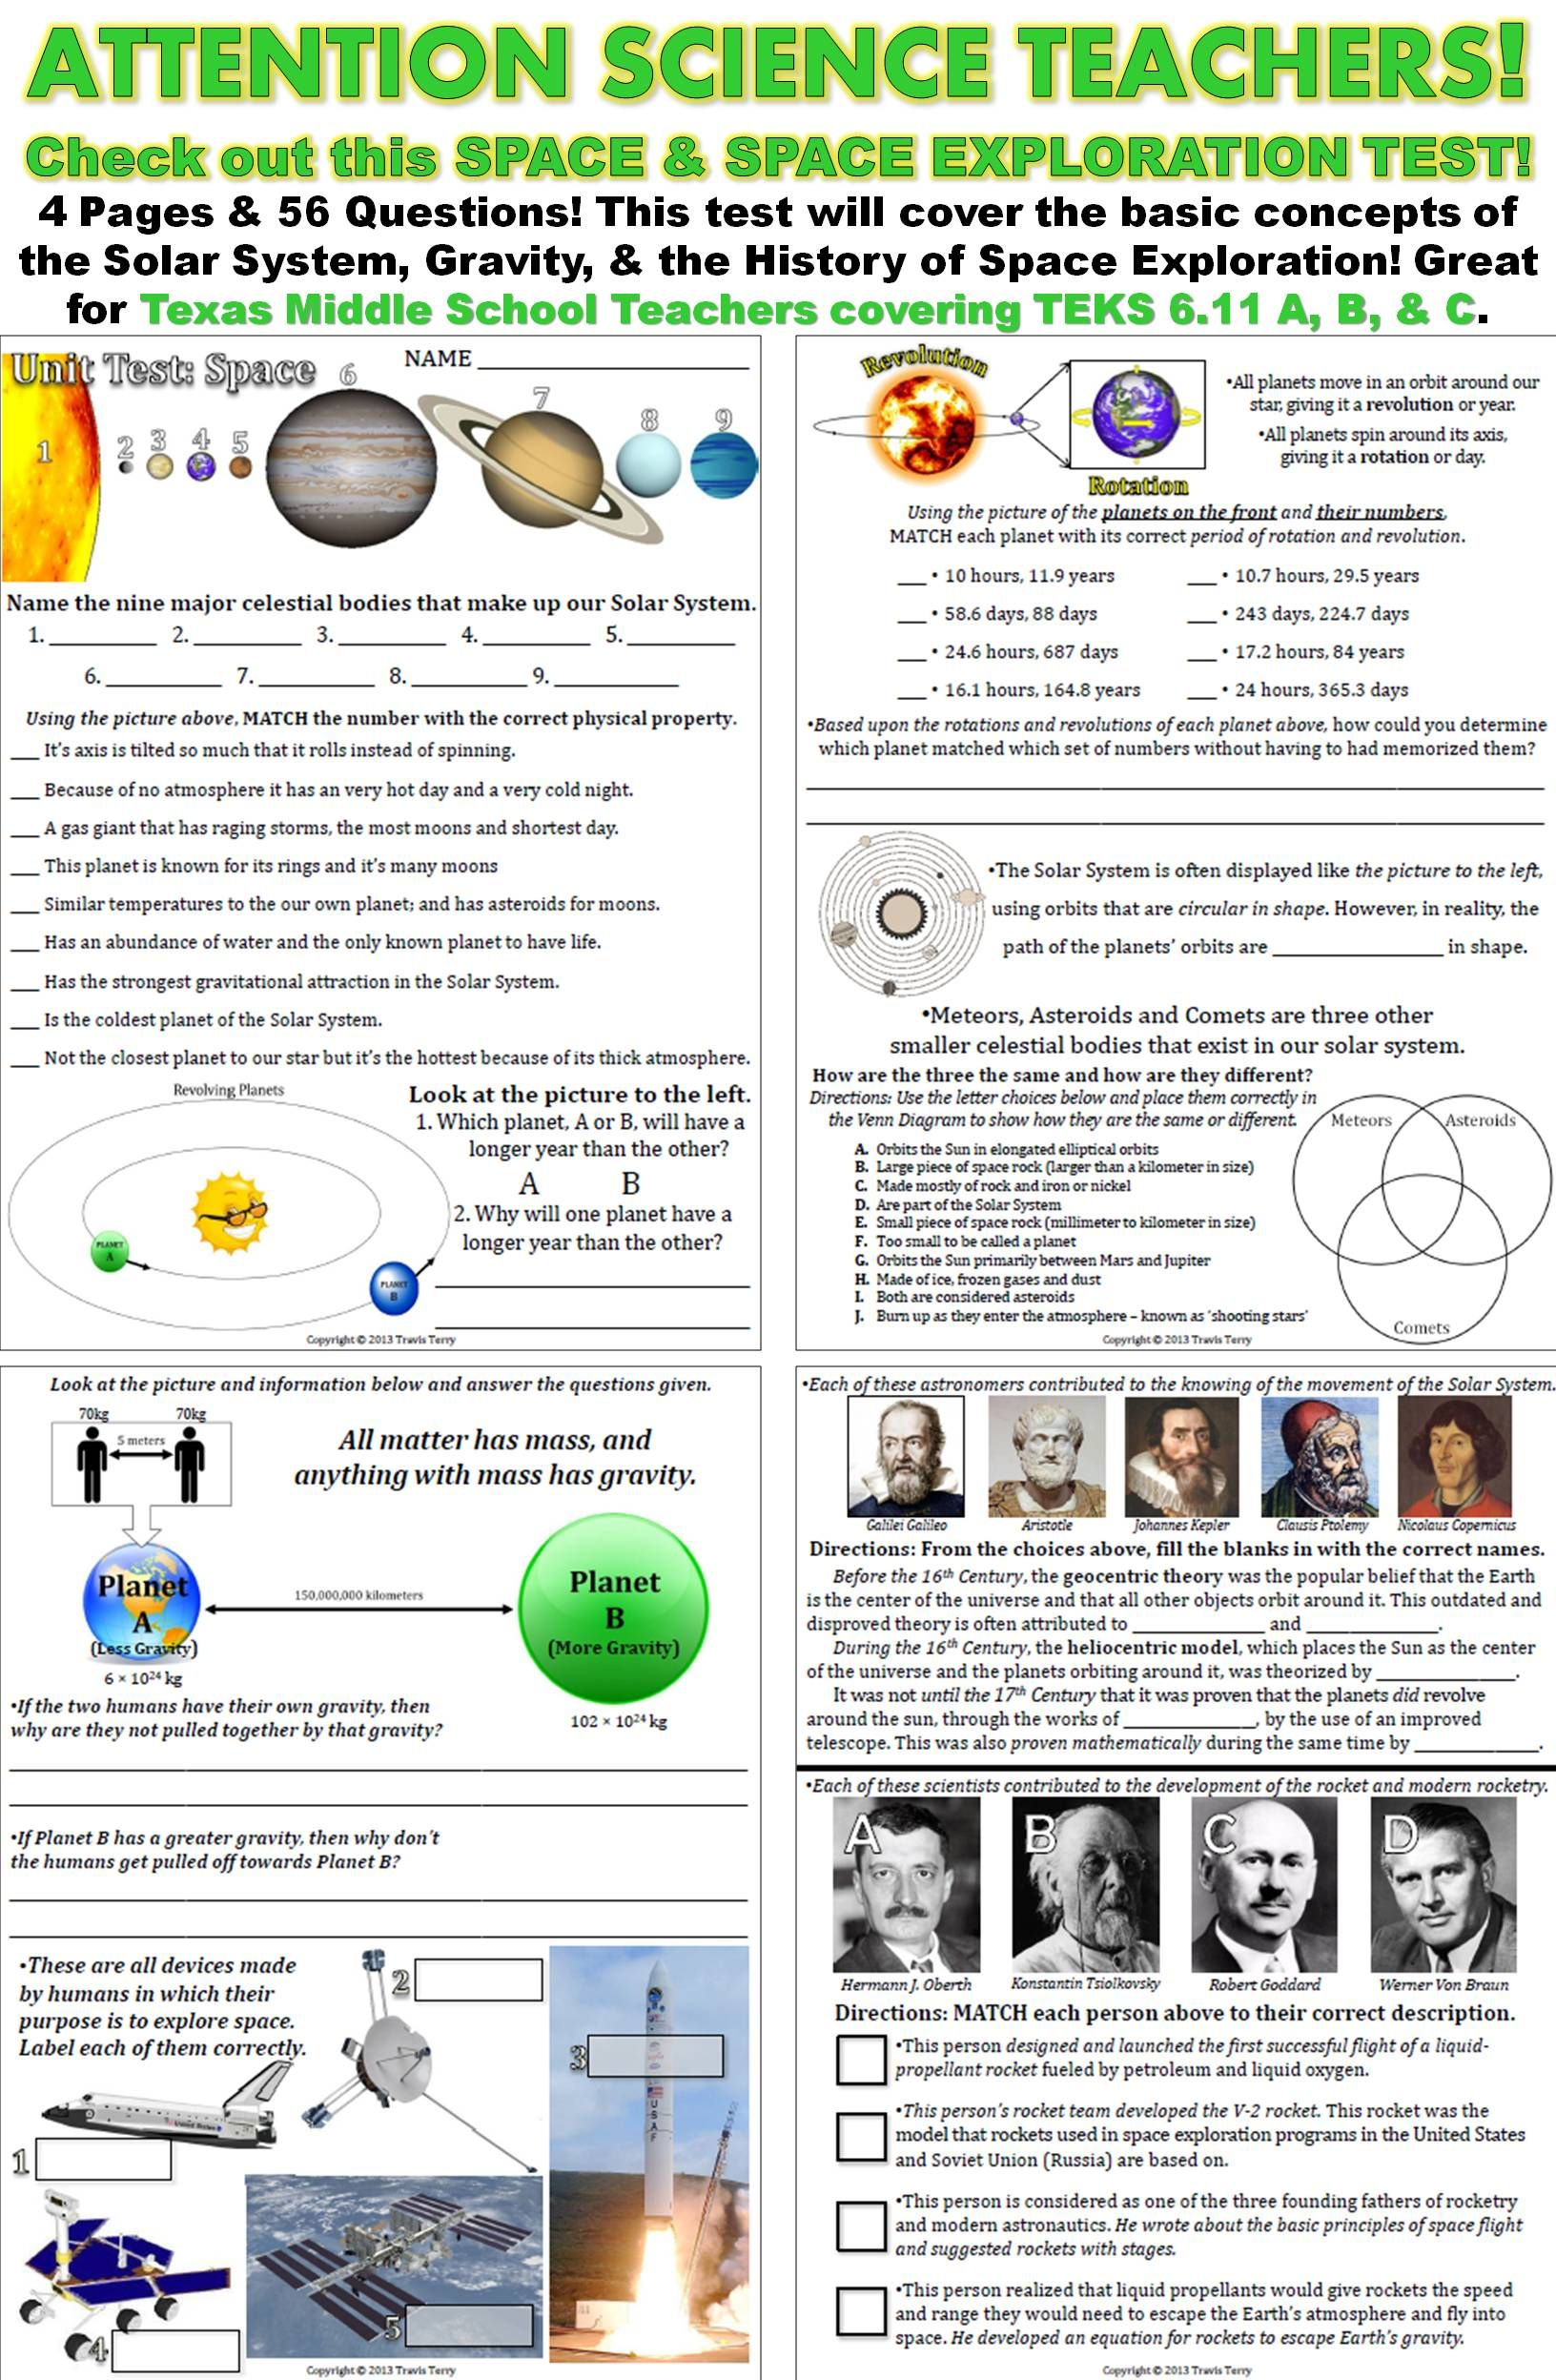 Pin On Science Resources For Middle School Teachers